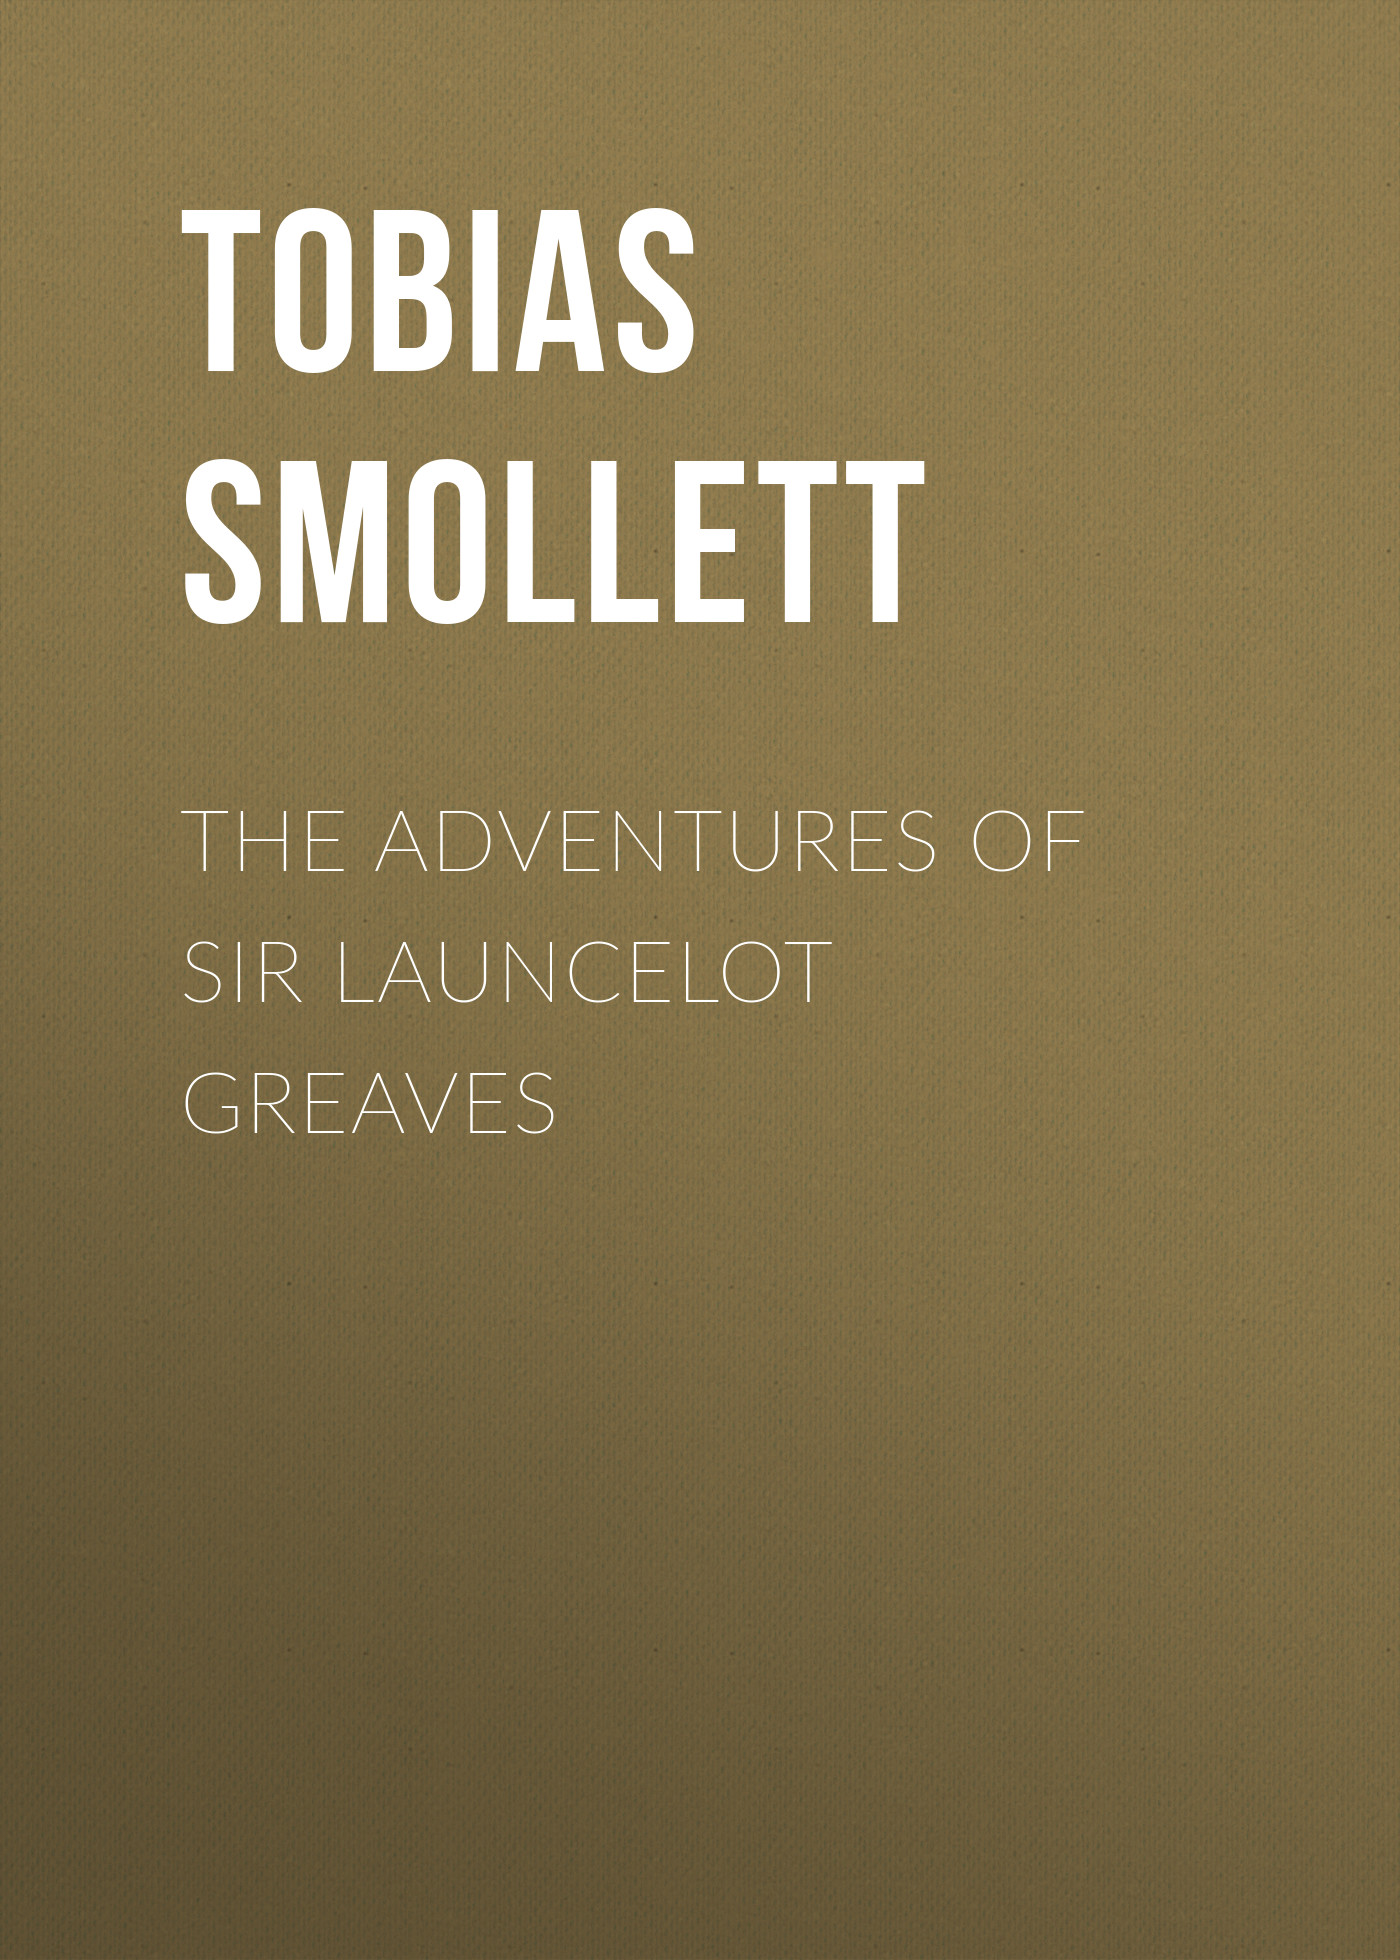 Tobias Smollett The Adventures of Sir Launcelot Greaves